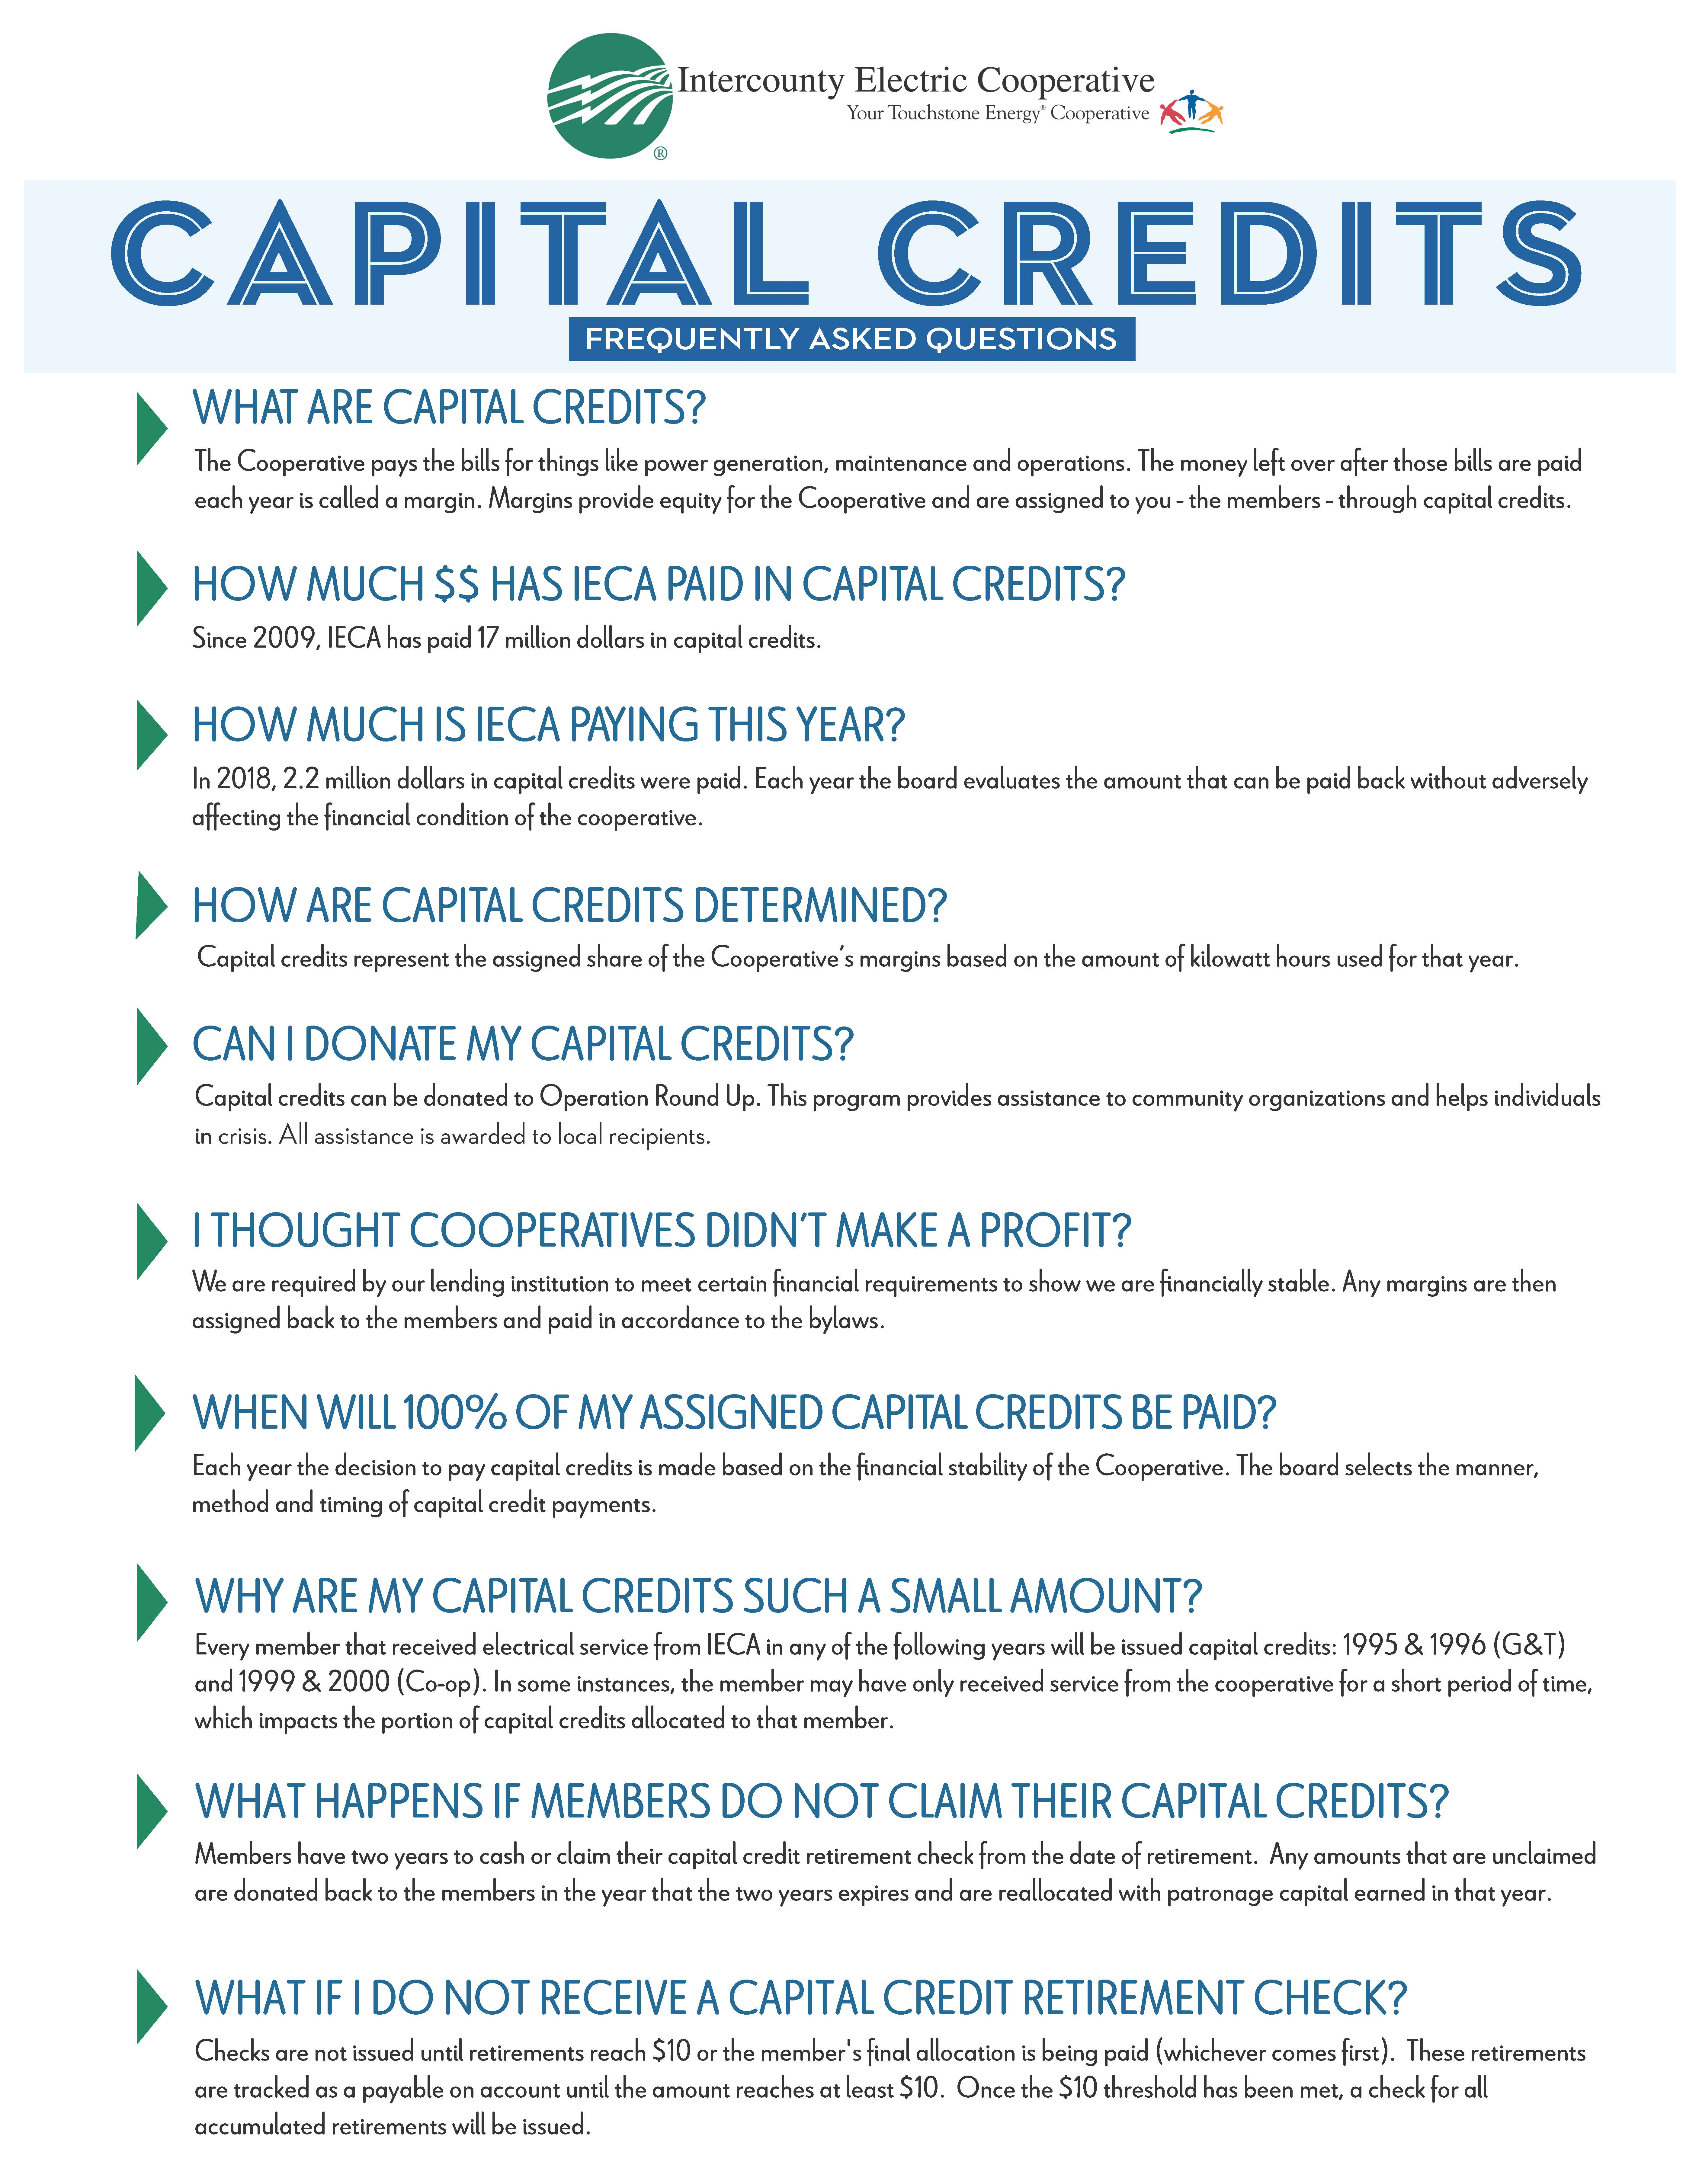 IECA Capital Credit FAQs_0.jpg